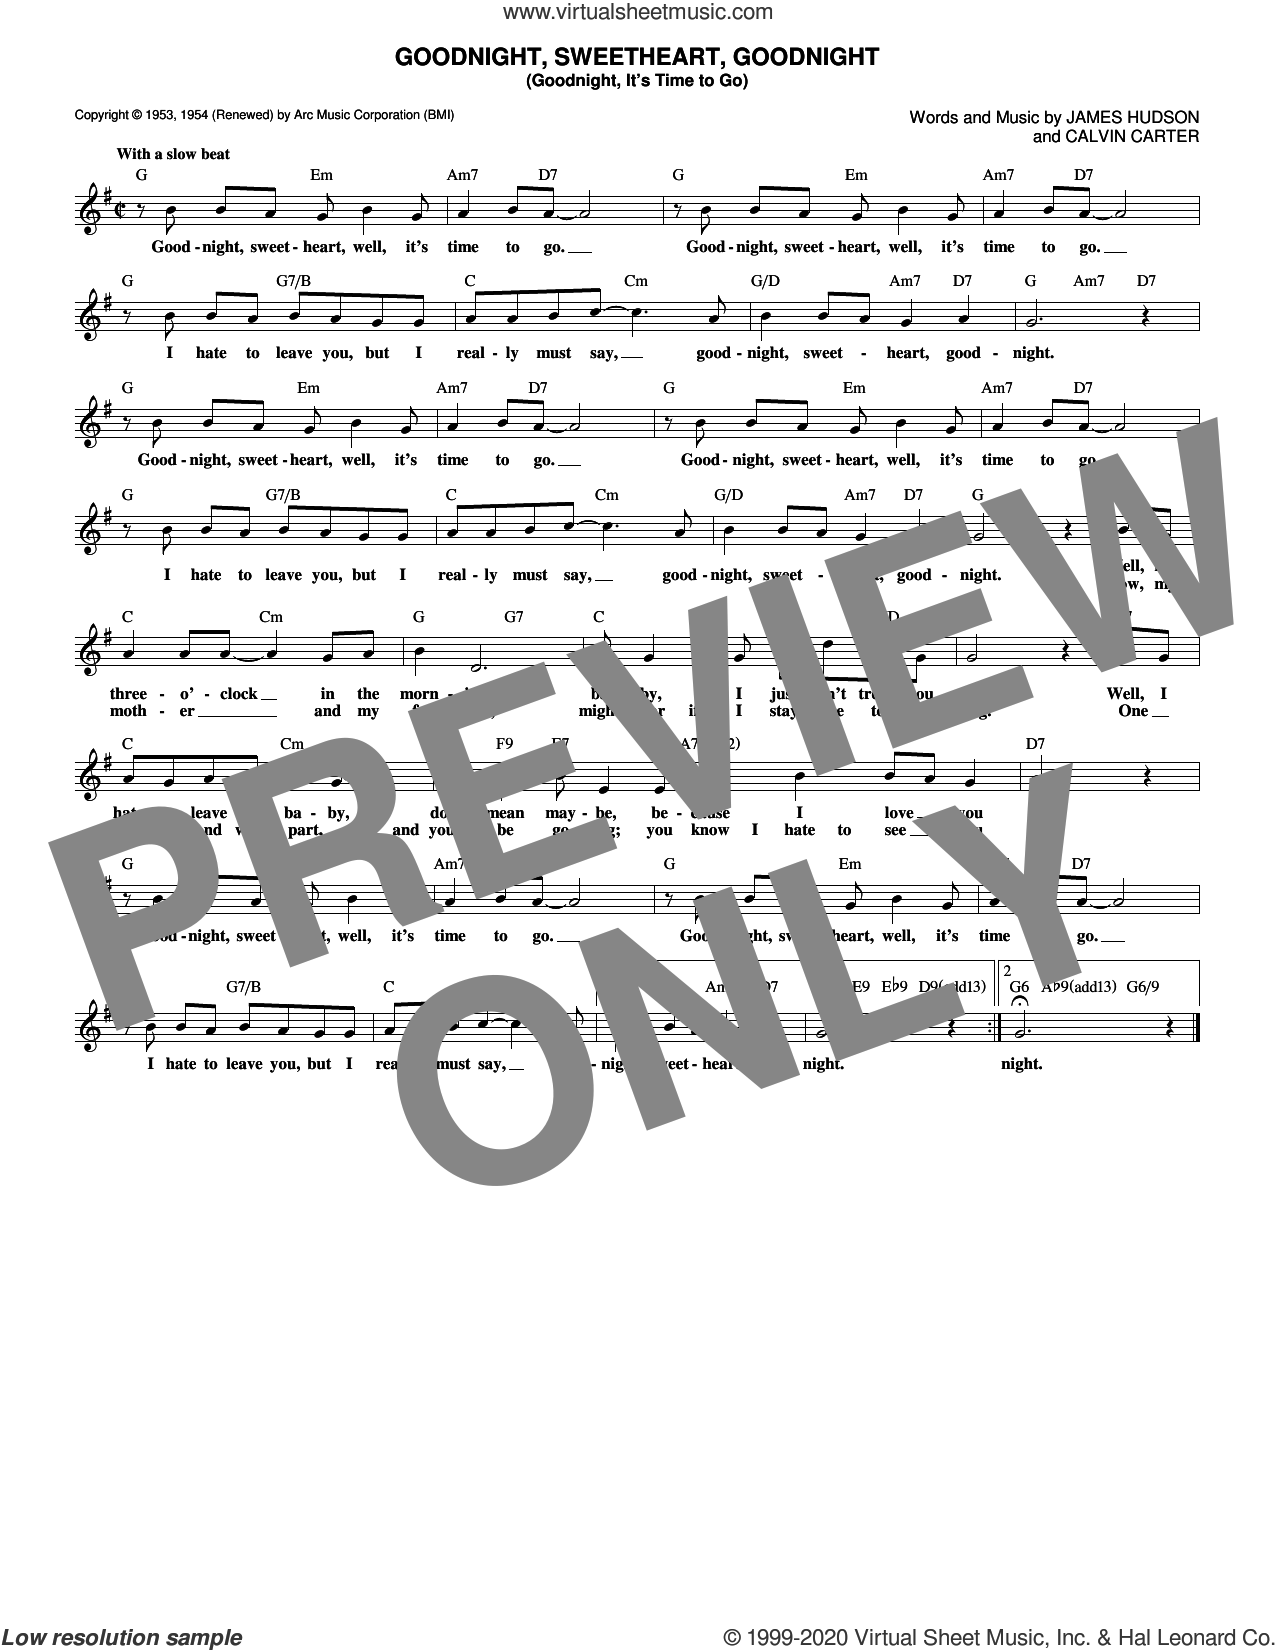 Goodnight, Sweetheart, Goodnight (Goodnight, It's Time To Go) sheet music for voice and other instruments (fake book) by McGuire Sisters, Chuck Berry, Tokens, Calvin Carter and James Hudson, intermediate skill level